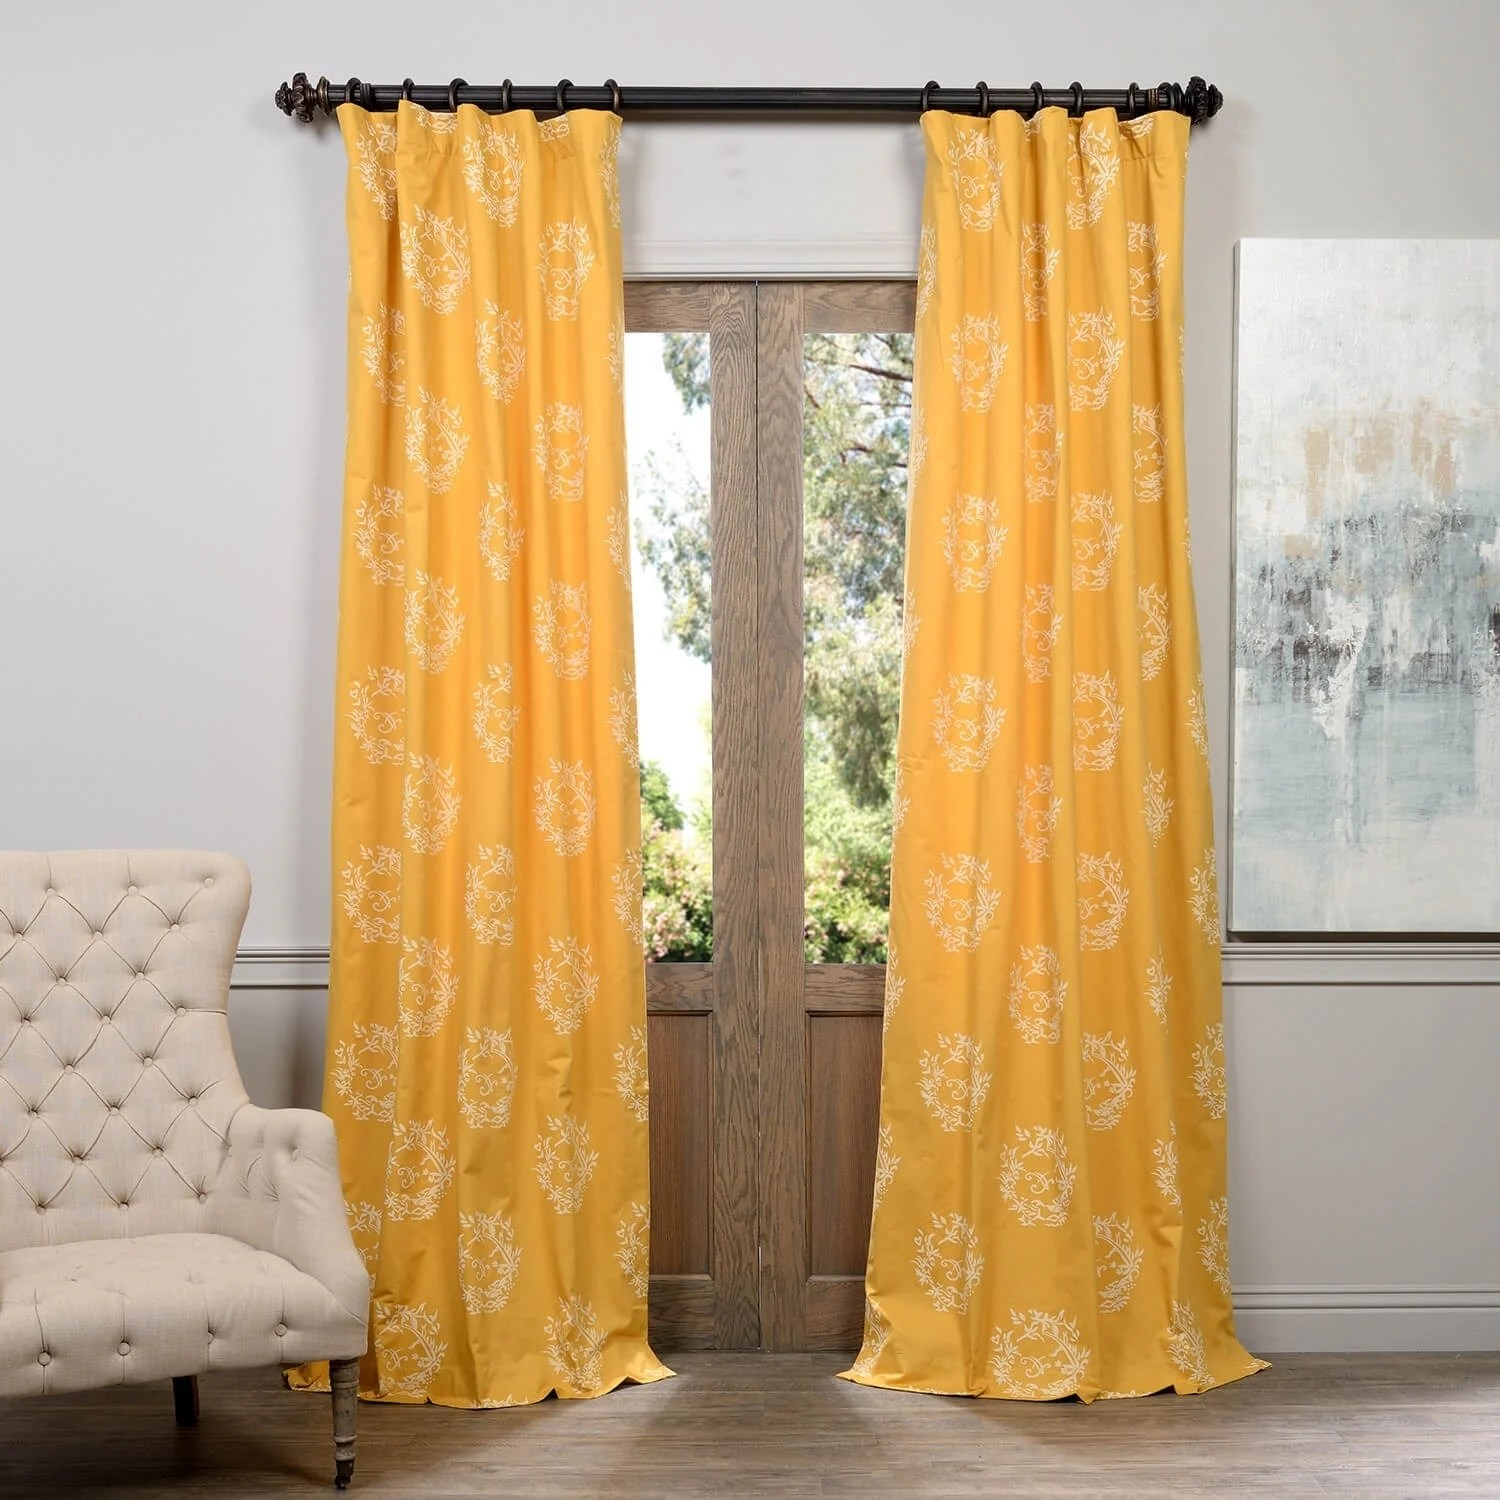 Curtain Deals Buy Curtains And Drapes Online At Overstock Our Best